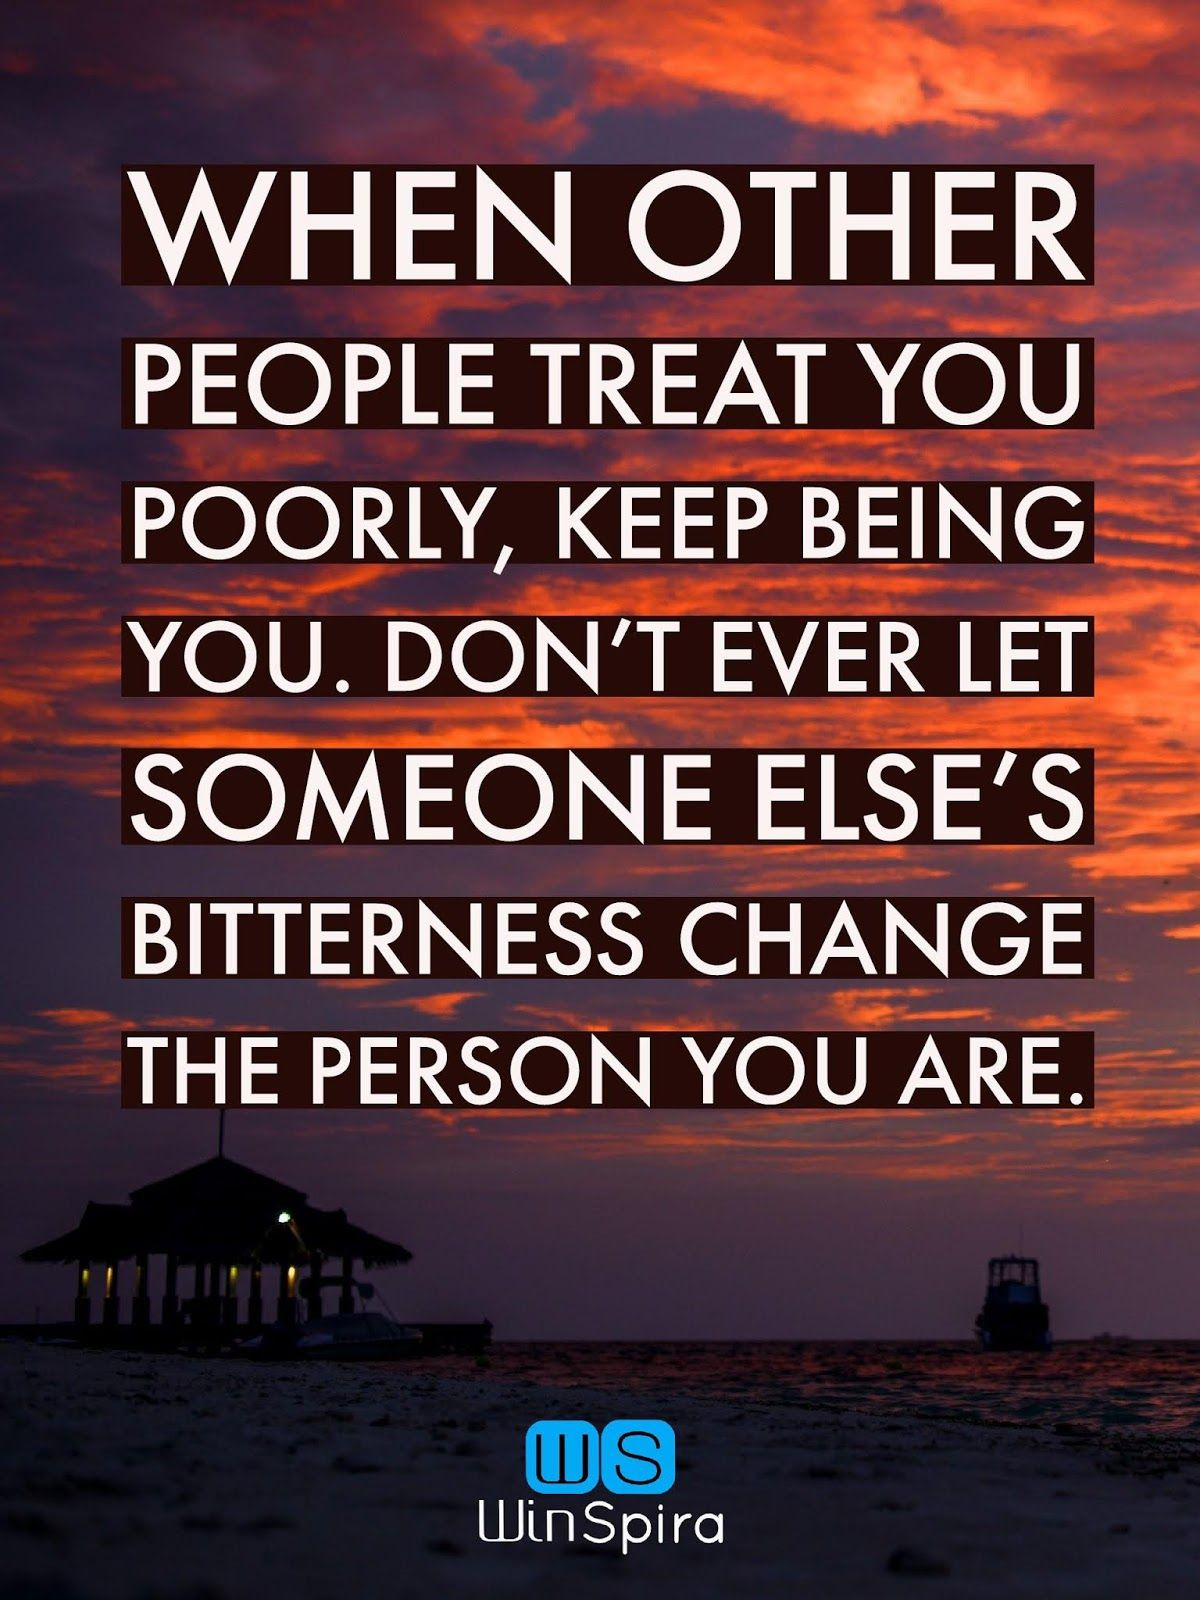 Ultimate 100 Inspirational And Motivational Quotes To Start Your Day With Winspira Positive Words Quotes Inspirational Quotes Motivation Loser Quotes